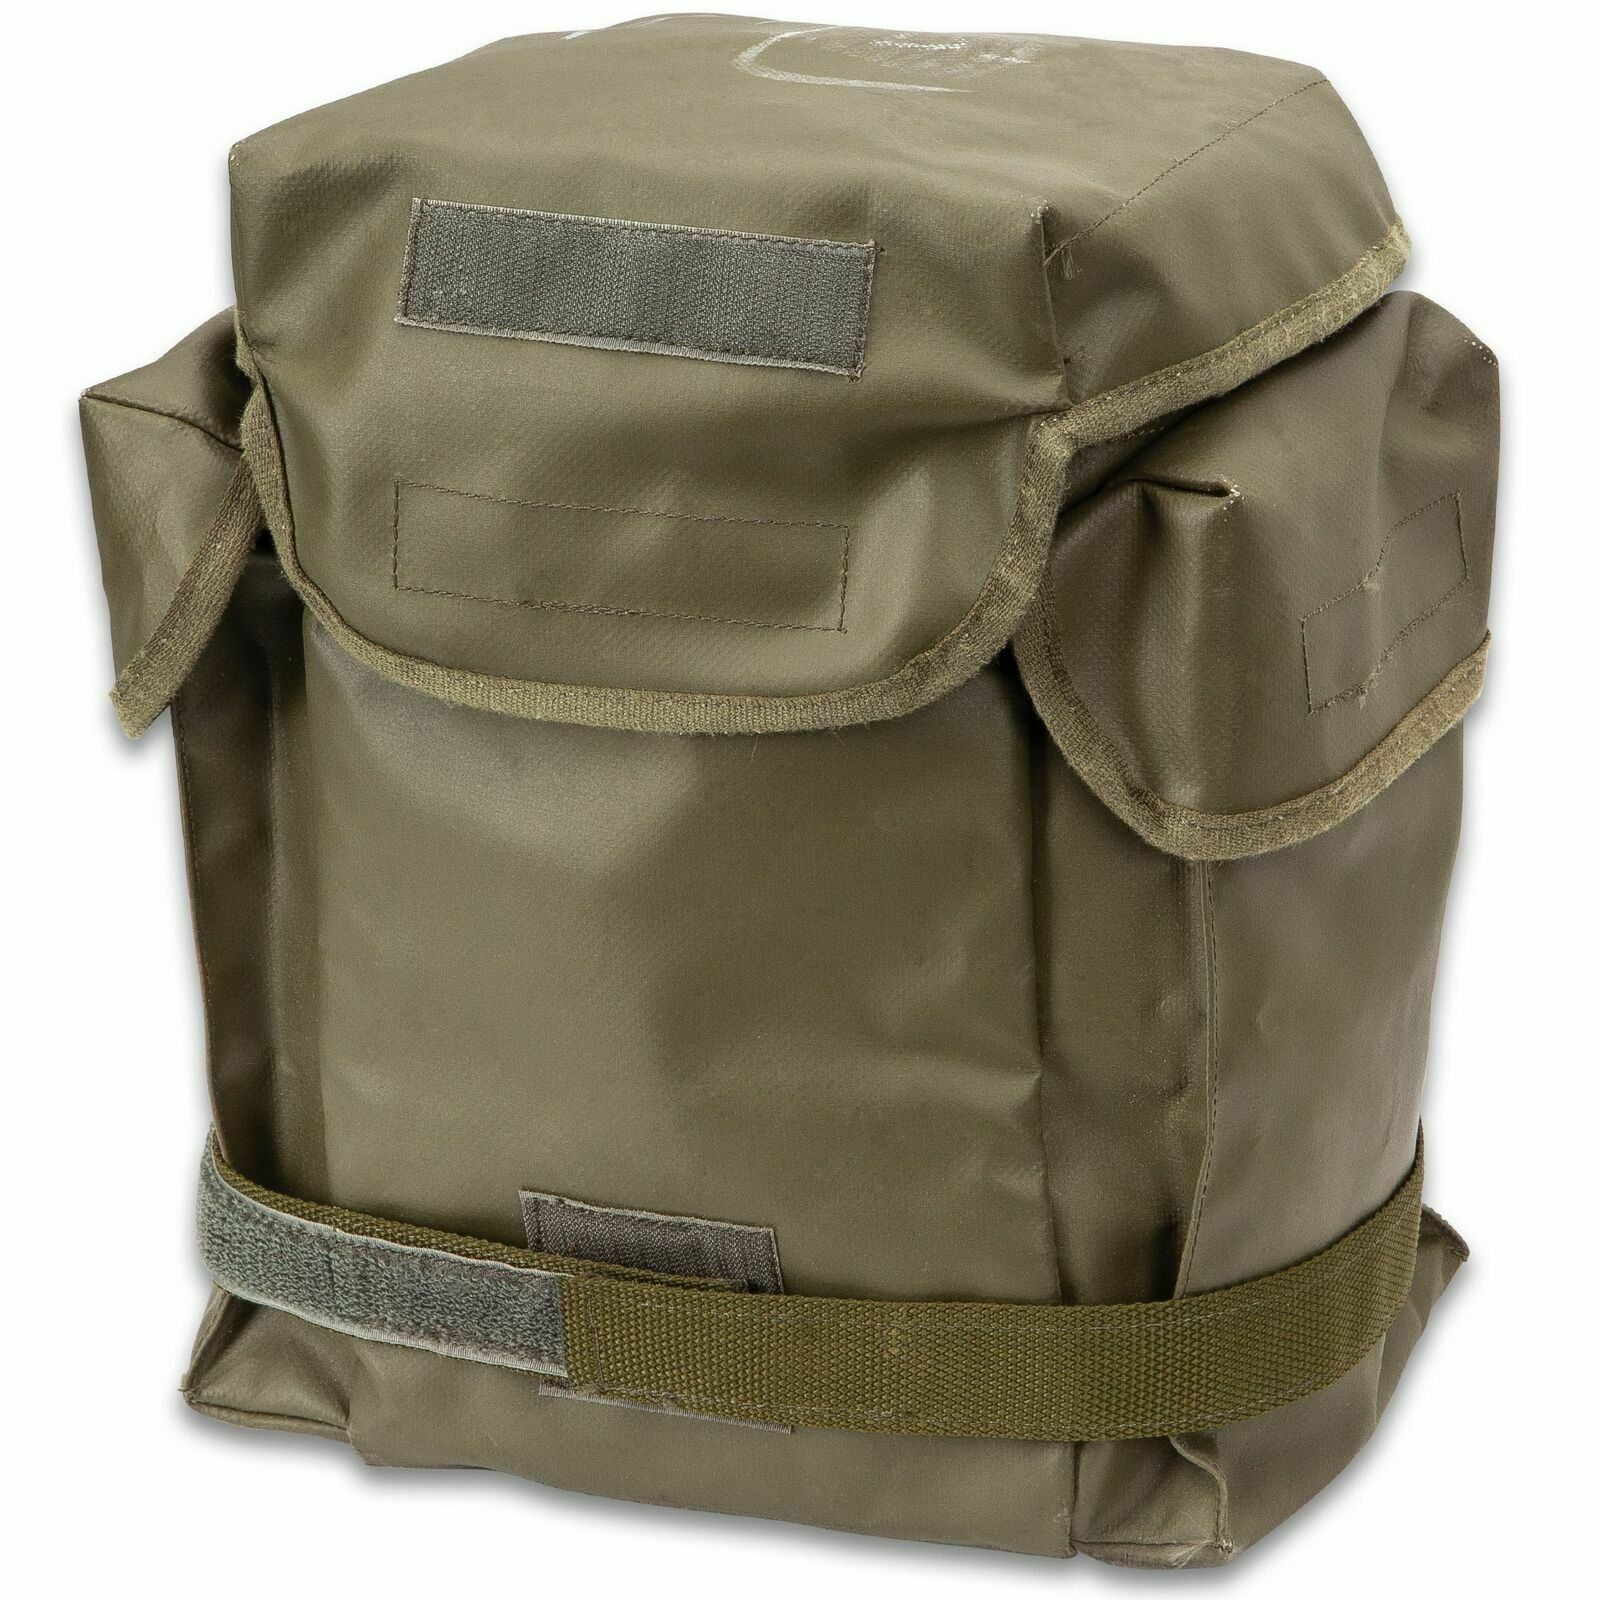 Water Resistant Survival Bag